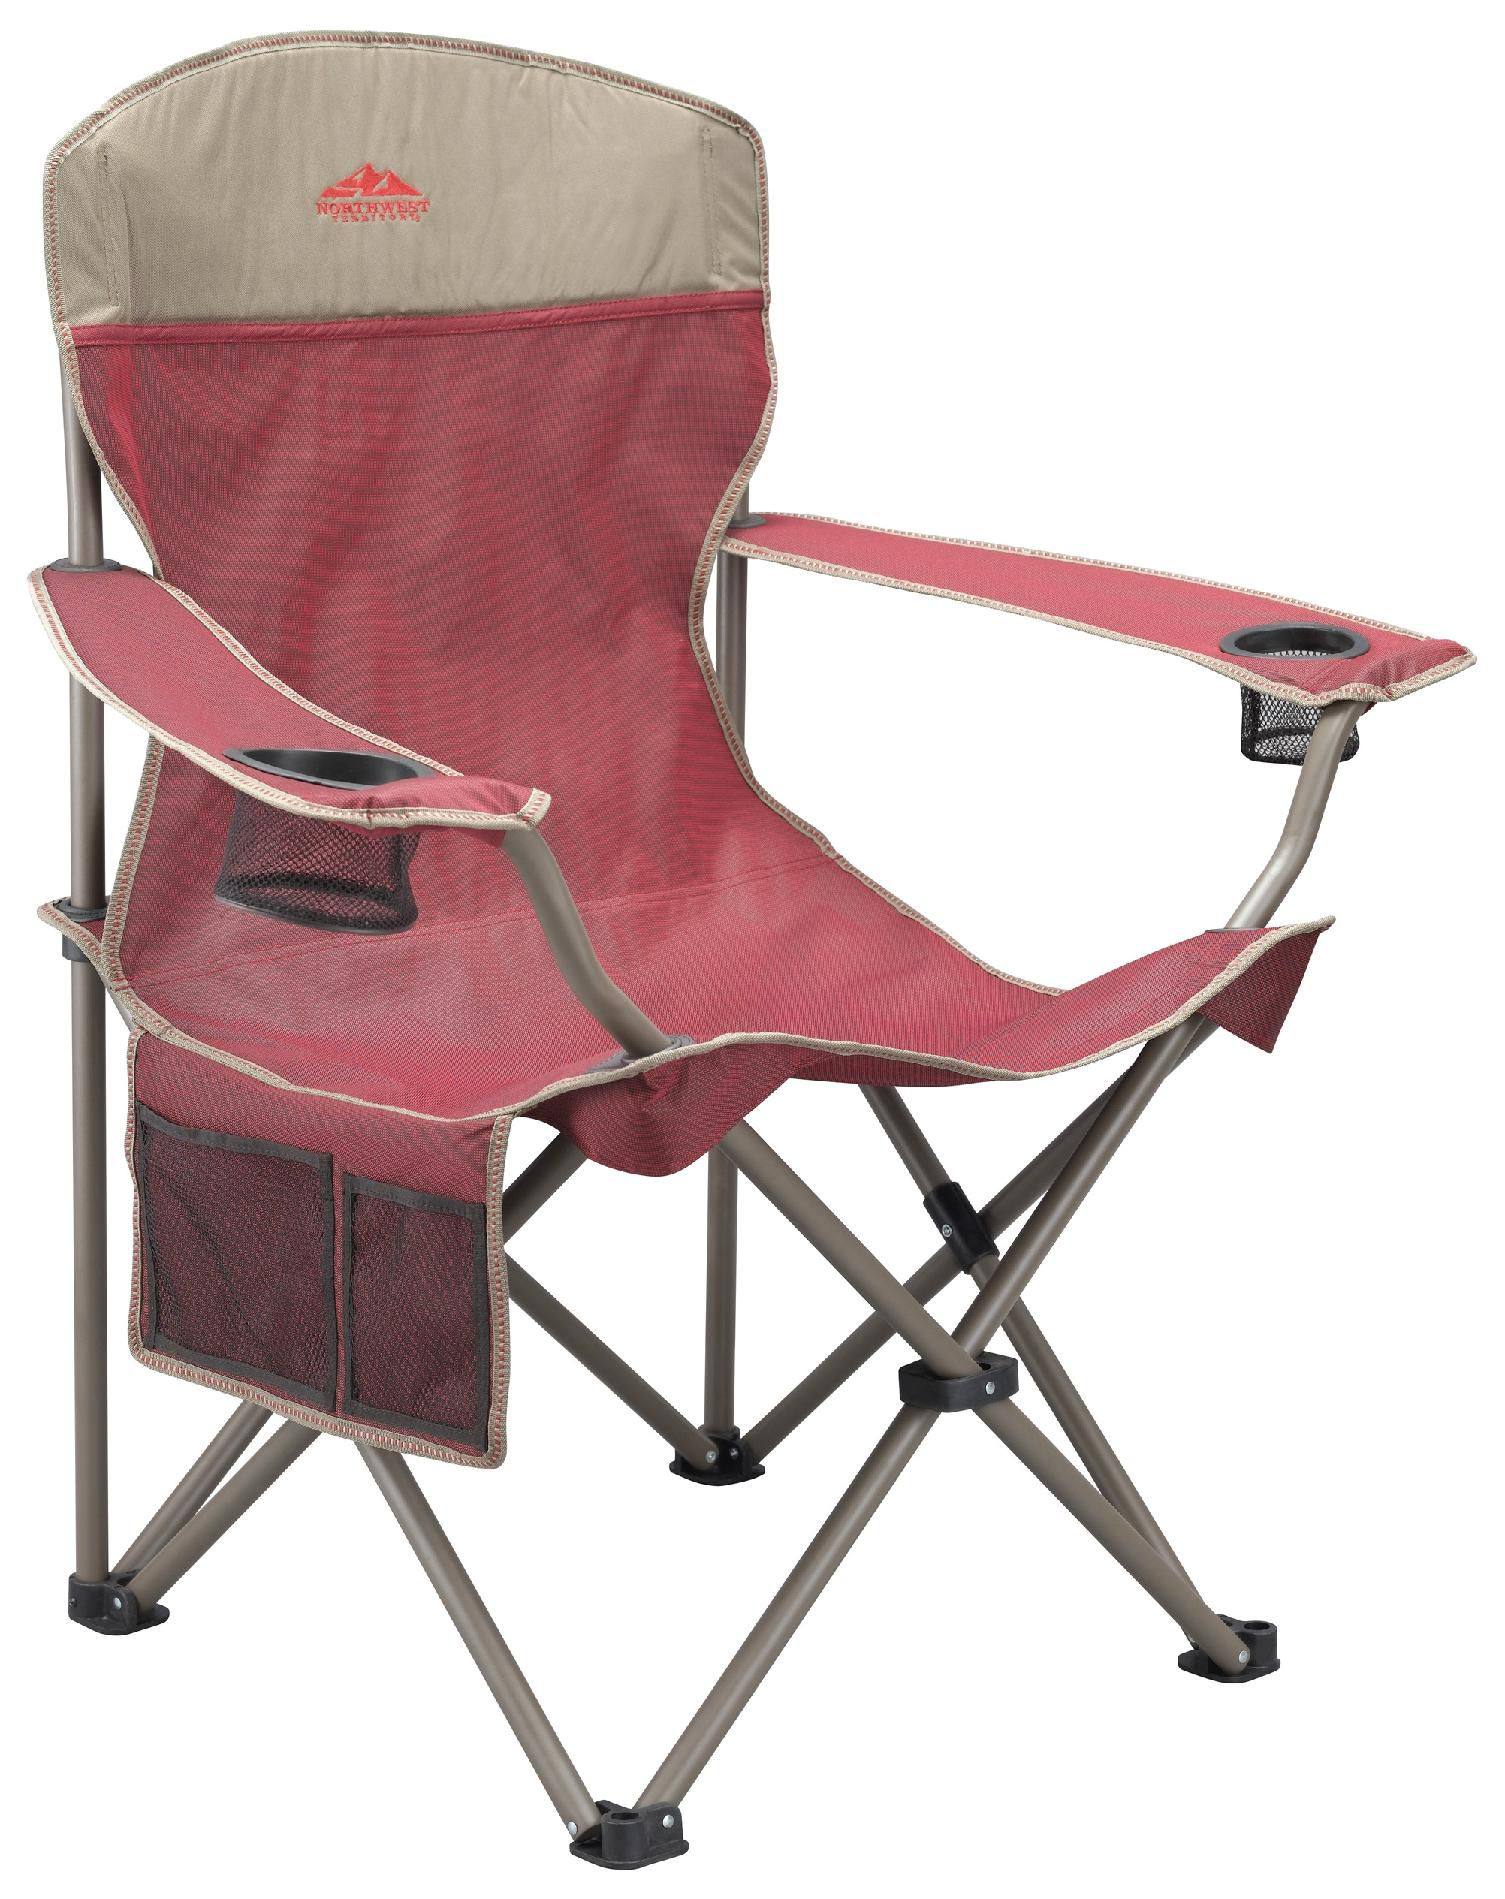 big camping chair outdoor table and sets uk northwest territory boy xl red fitness